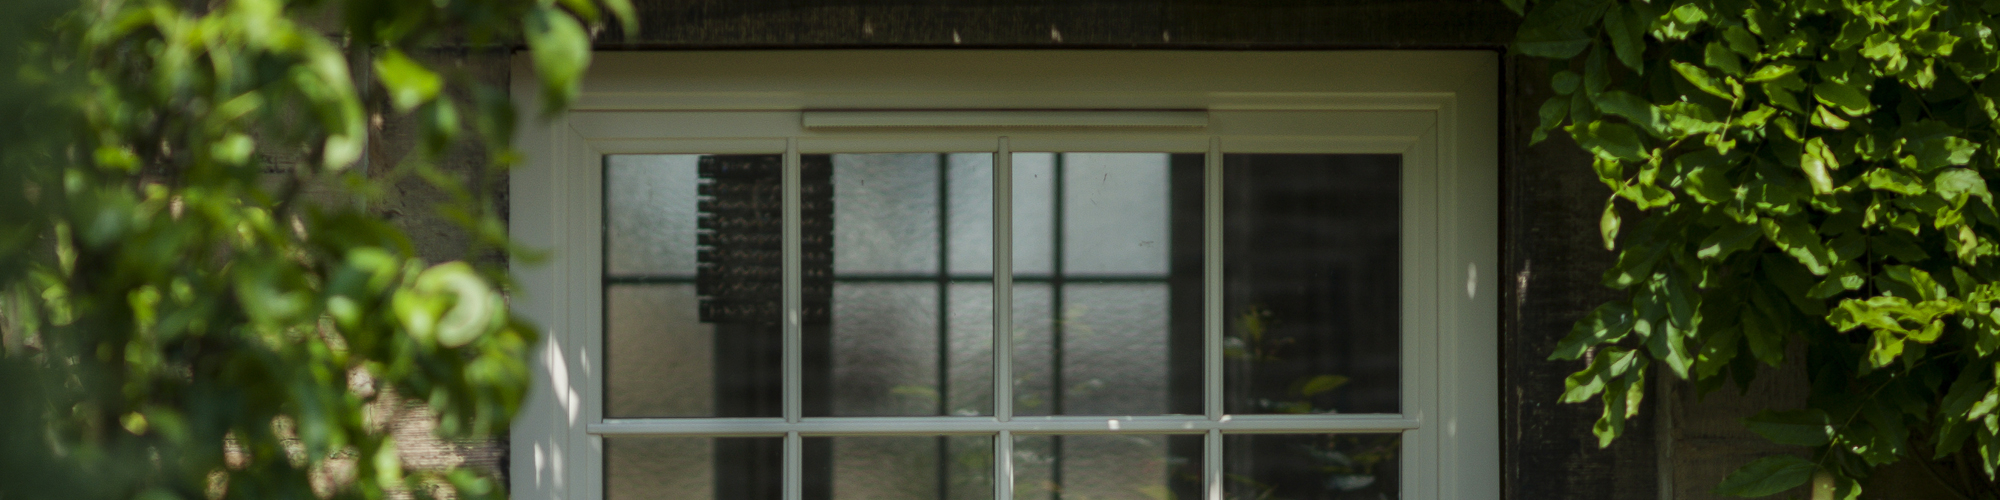 upvc windows, upvc, doors, replacement windows, pvcu windows